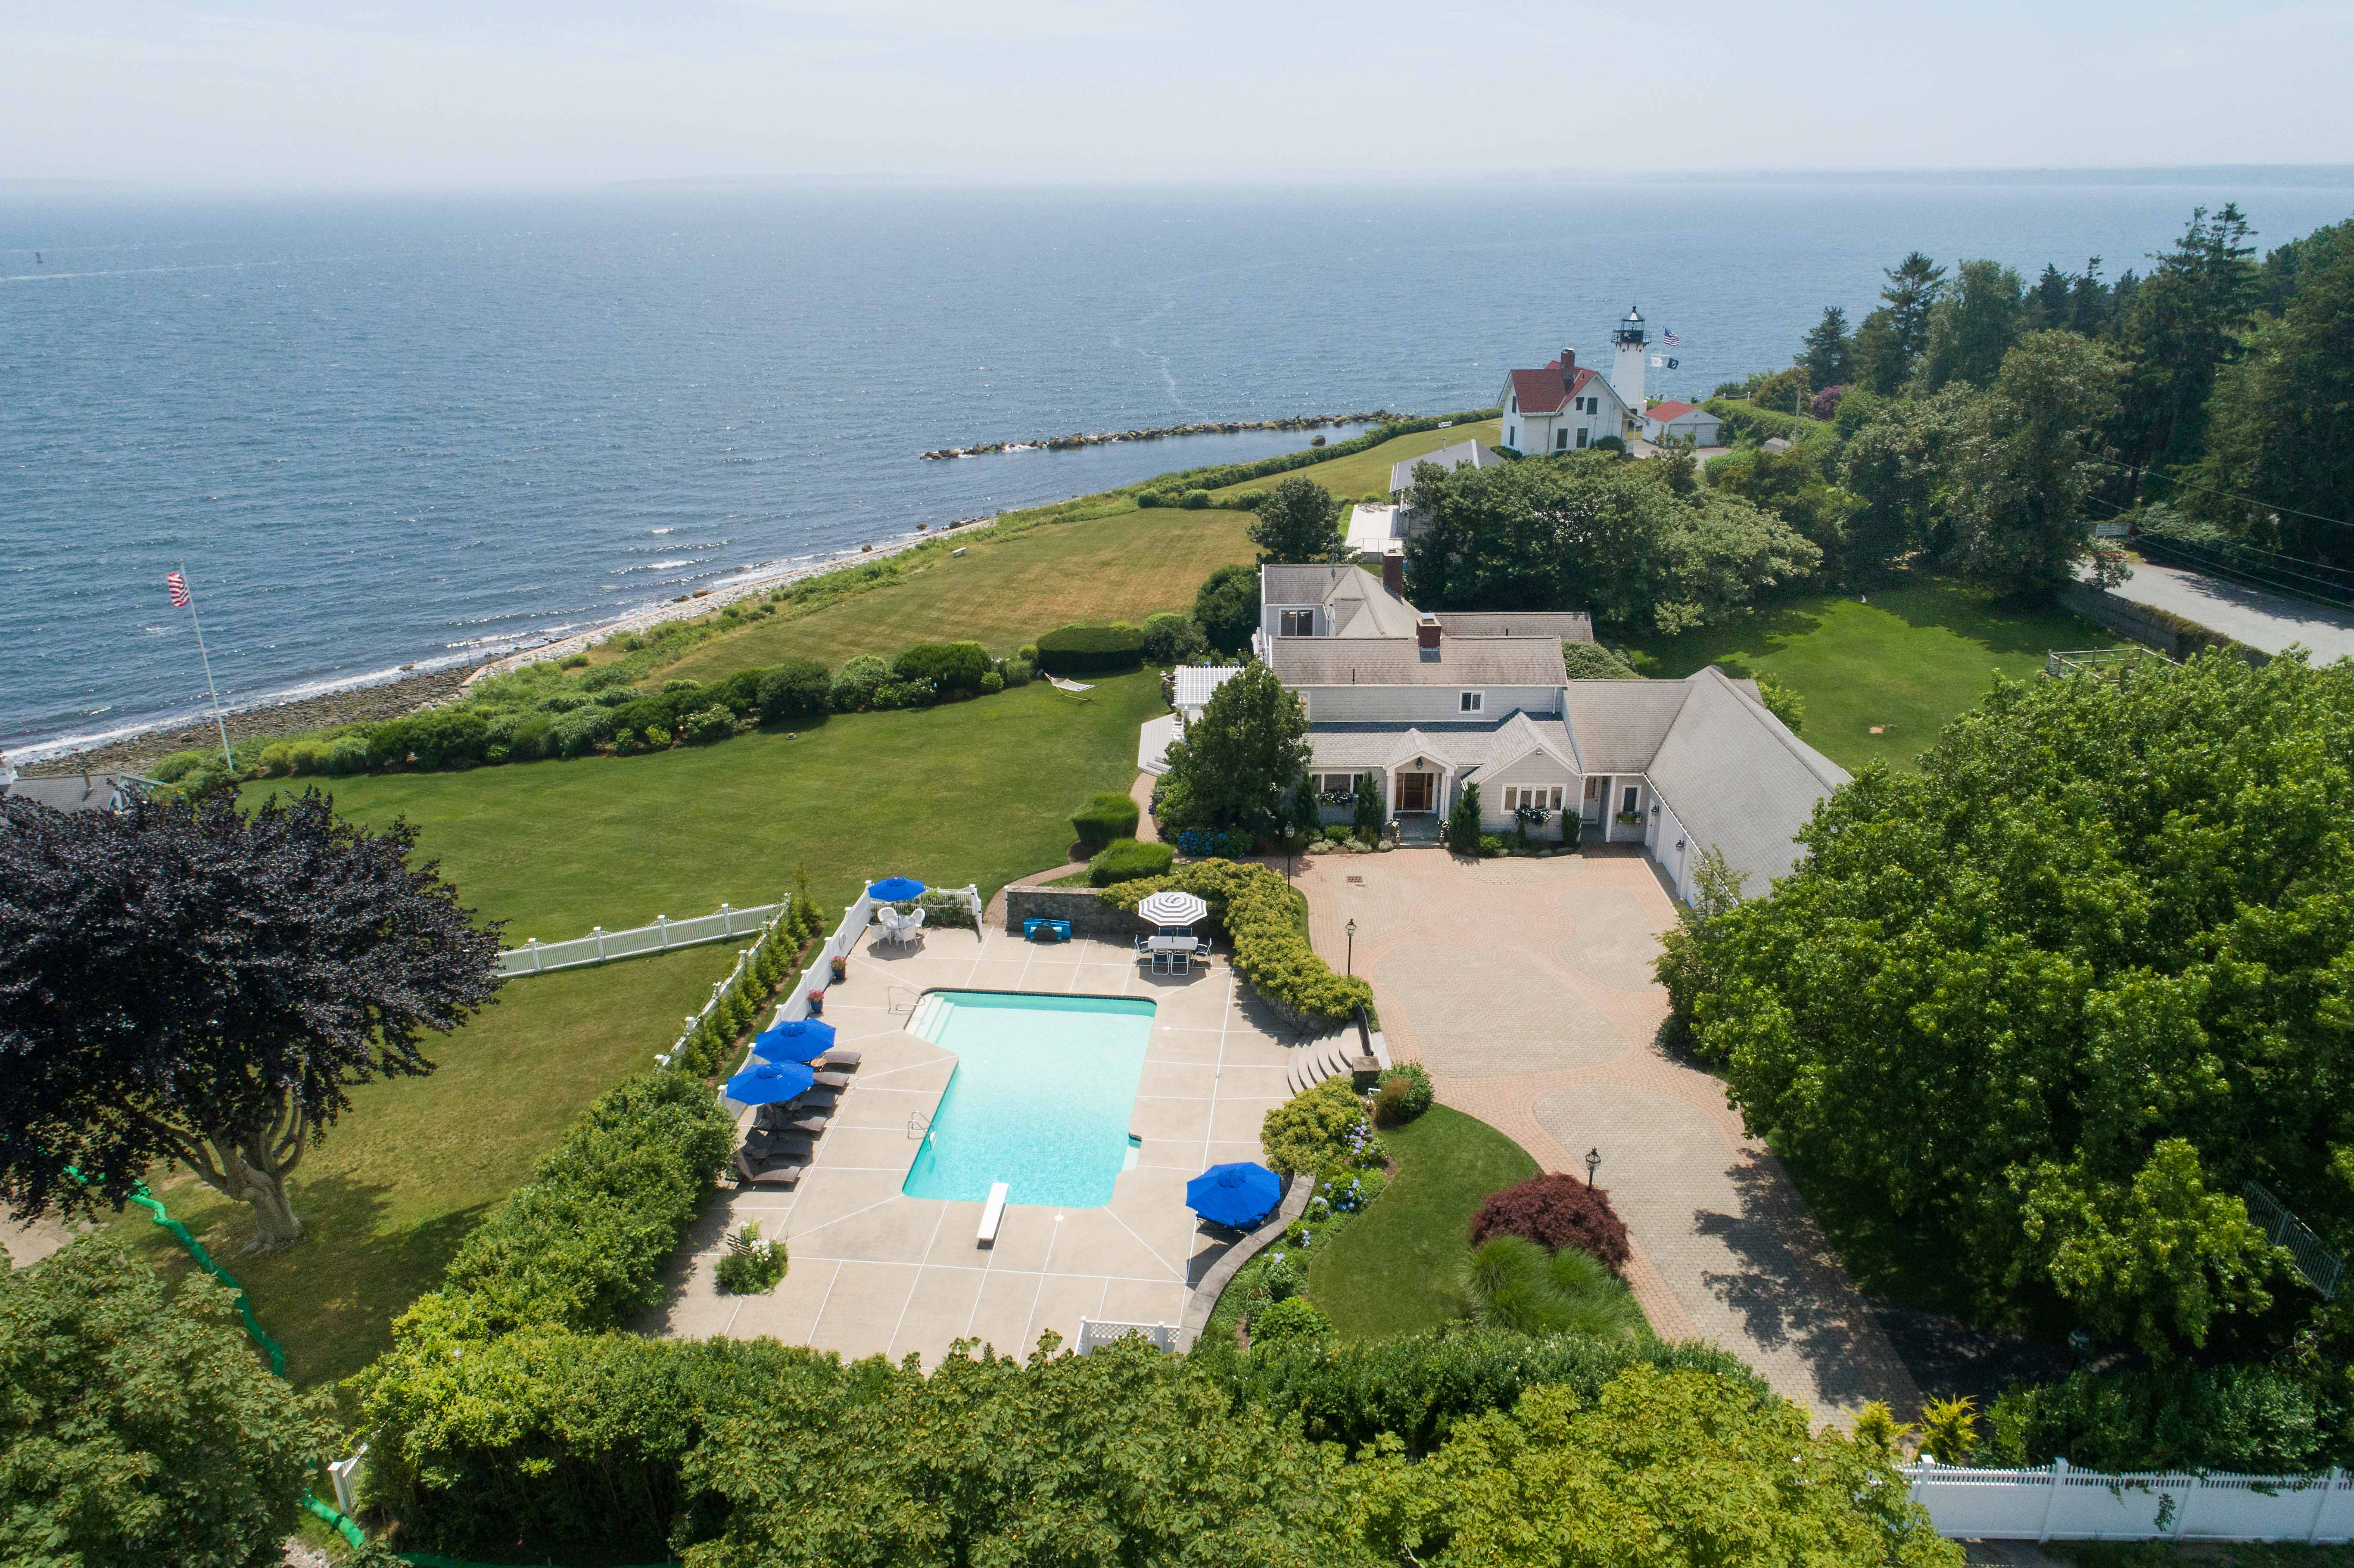 WARWICK NECK WATERFRONT ESTATE SELLS FOR $2.256M,  MARKING HIGHEST SALE IN WARWICK SINCE 2010*